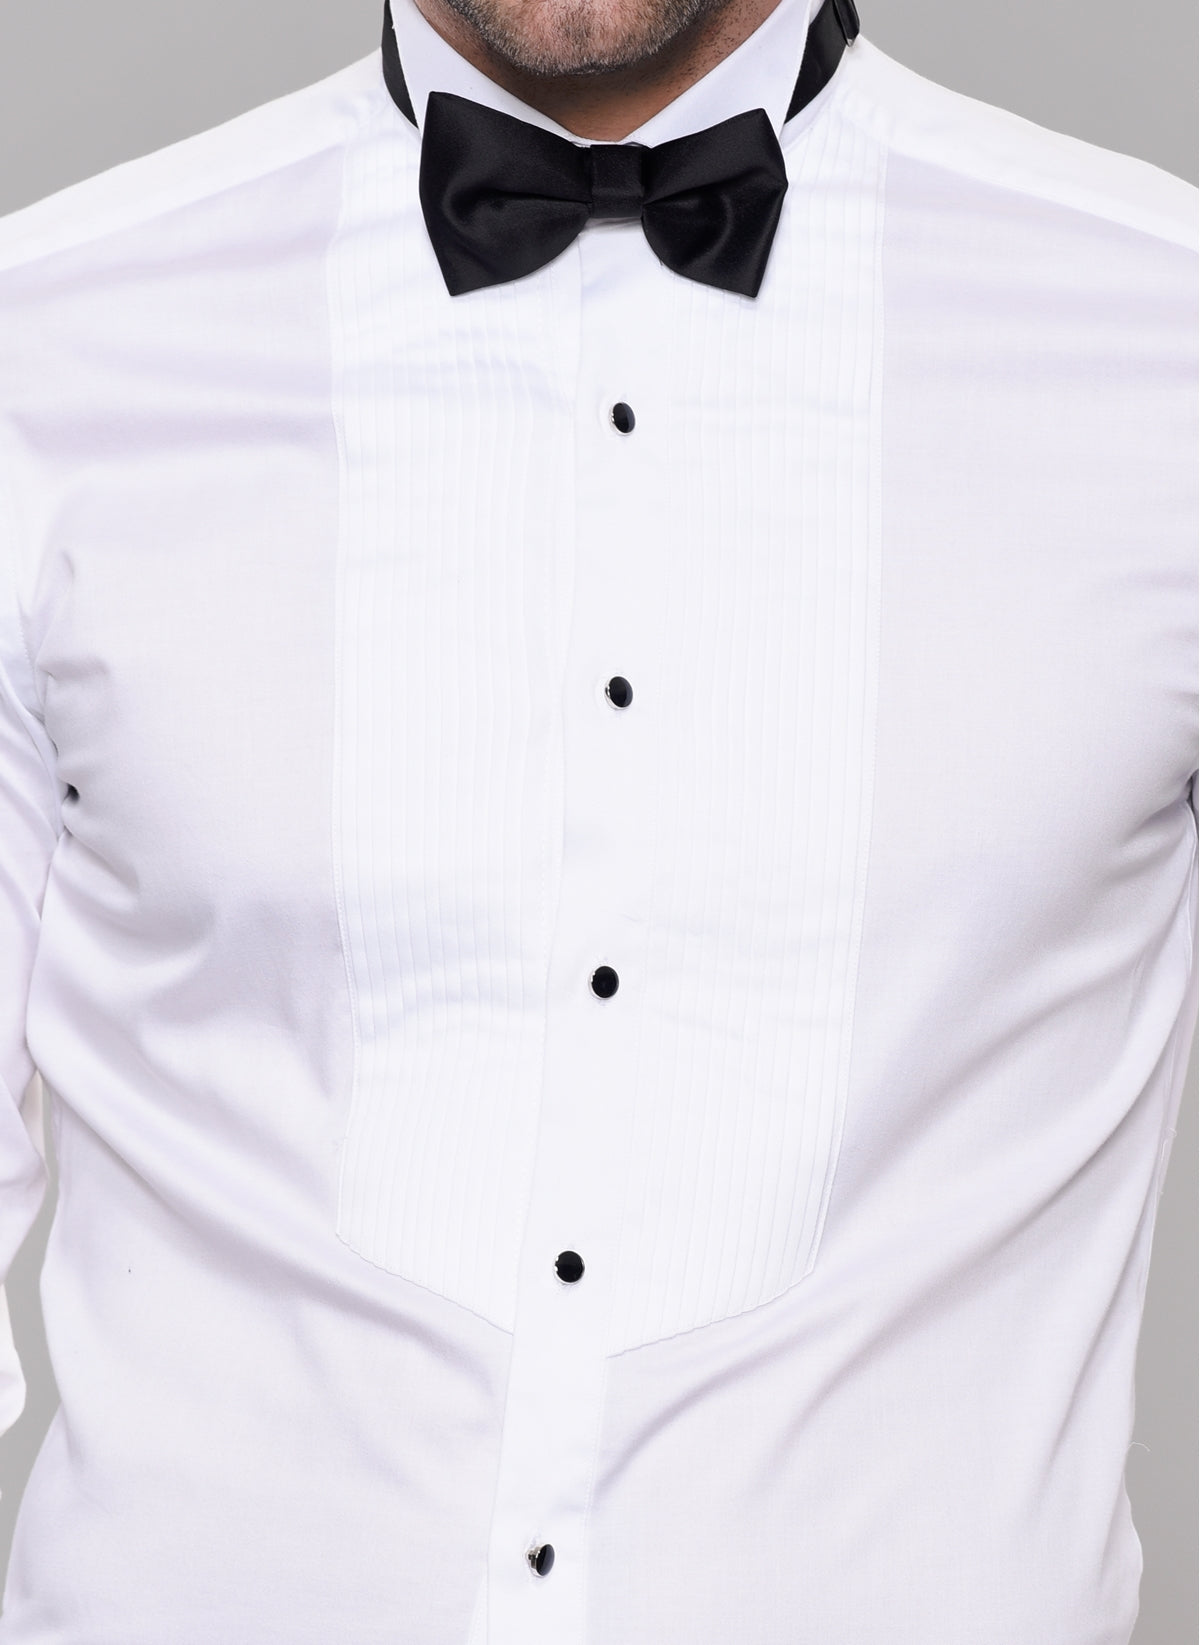 Tuxedo Stretch Shirt in White